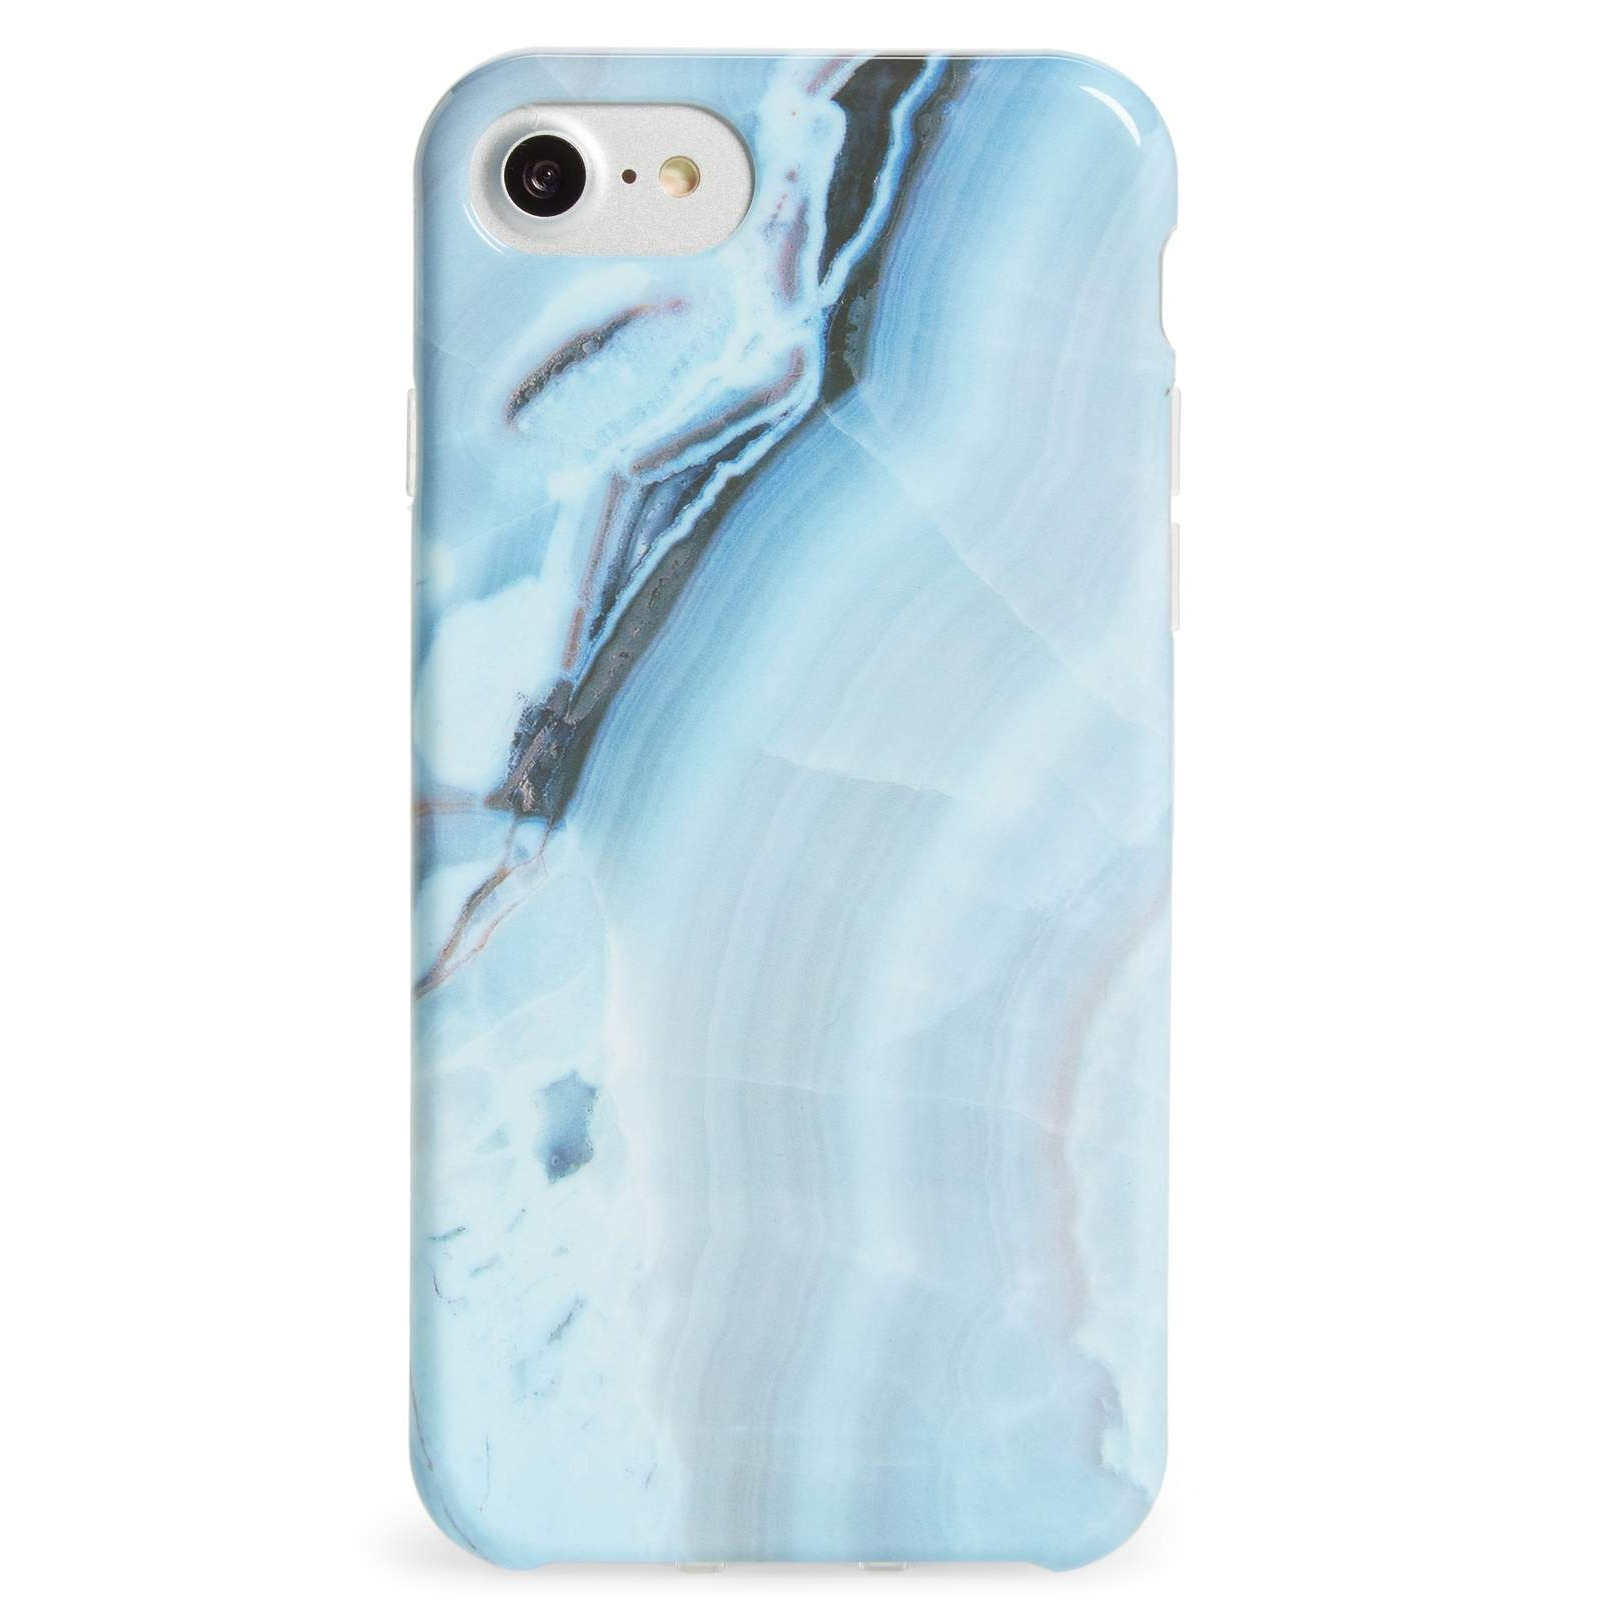 リカバー Chill iPhone 6/6s/7/8 Case